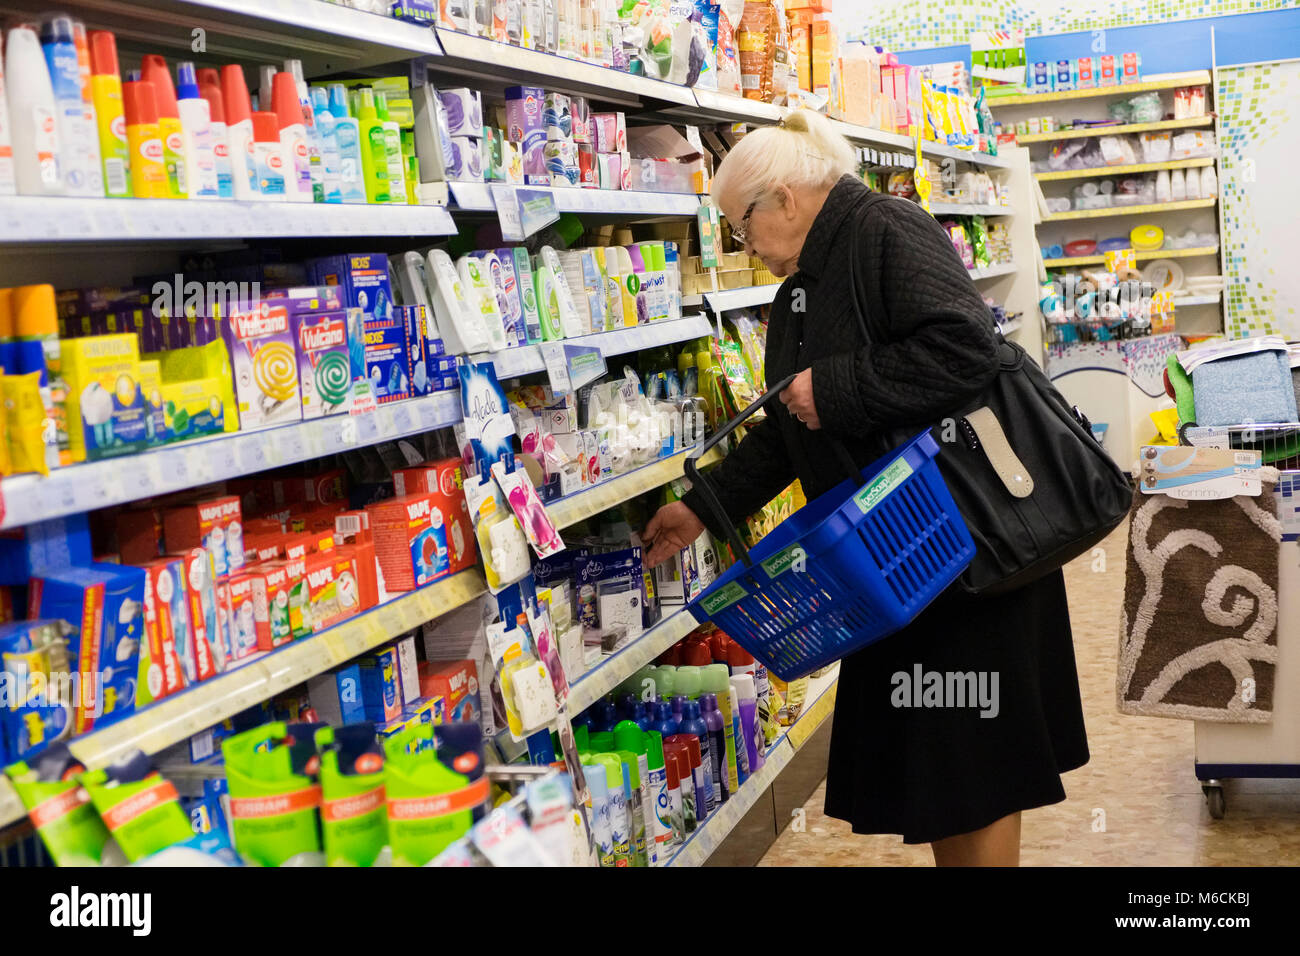 An elderly lady shopping in a drug store chemist shop - Stock Image